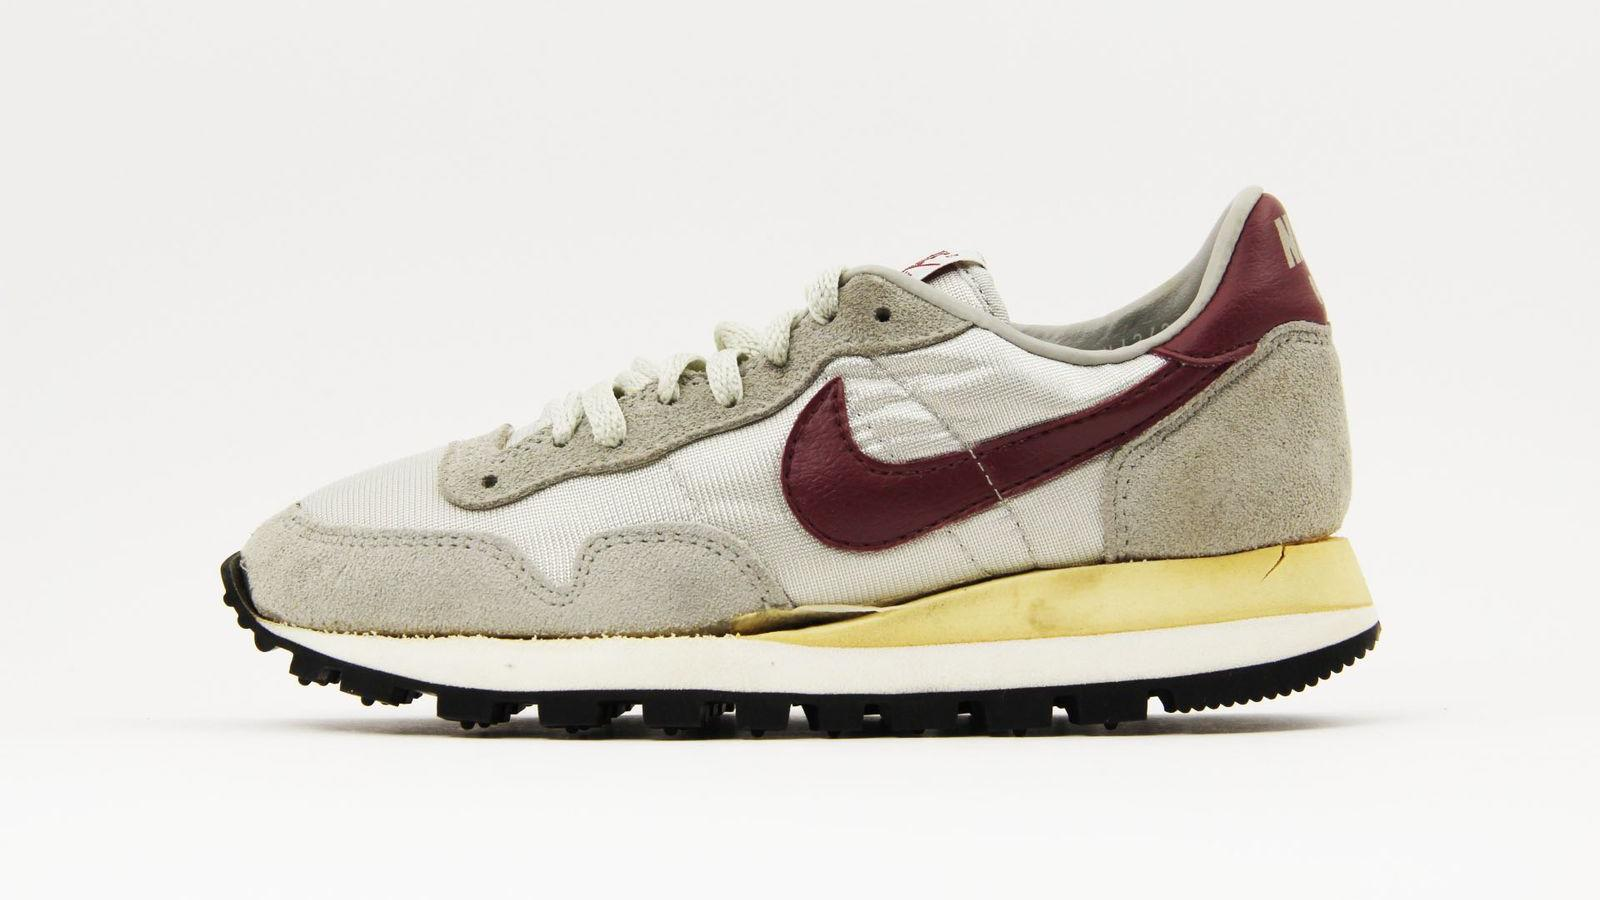 4e3adccdc783 10 Things You Didn t Know About the Nike Pegasus - Nike News